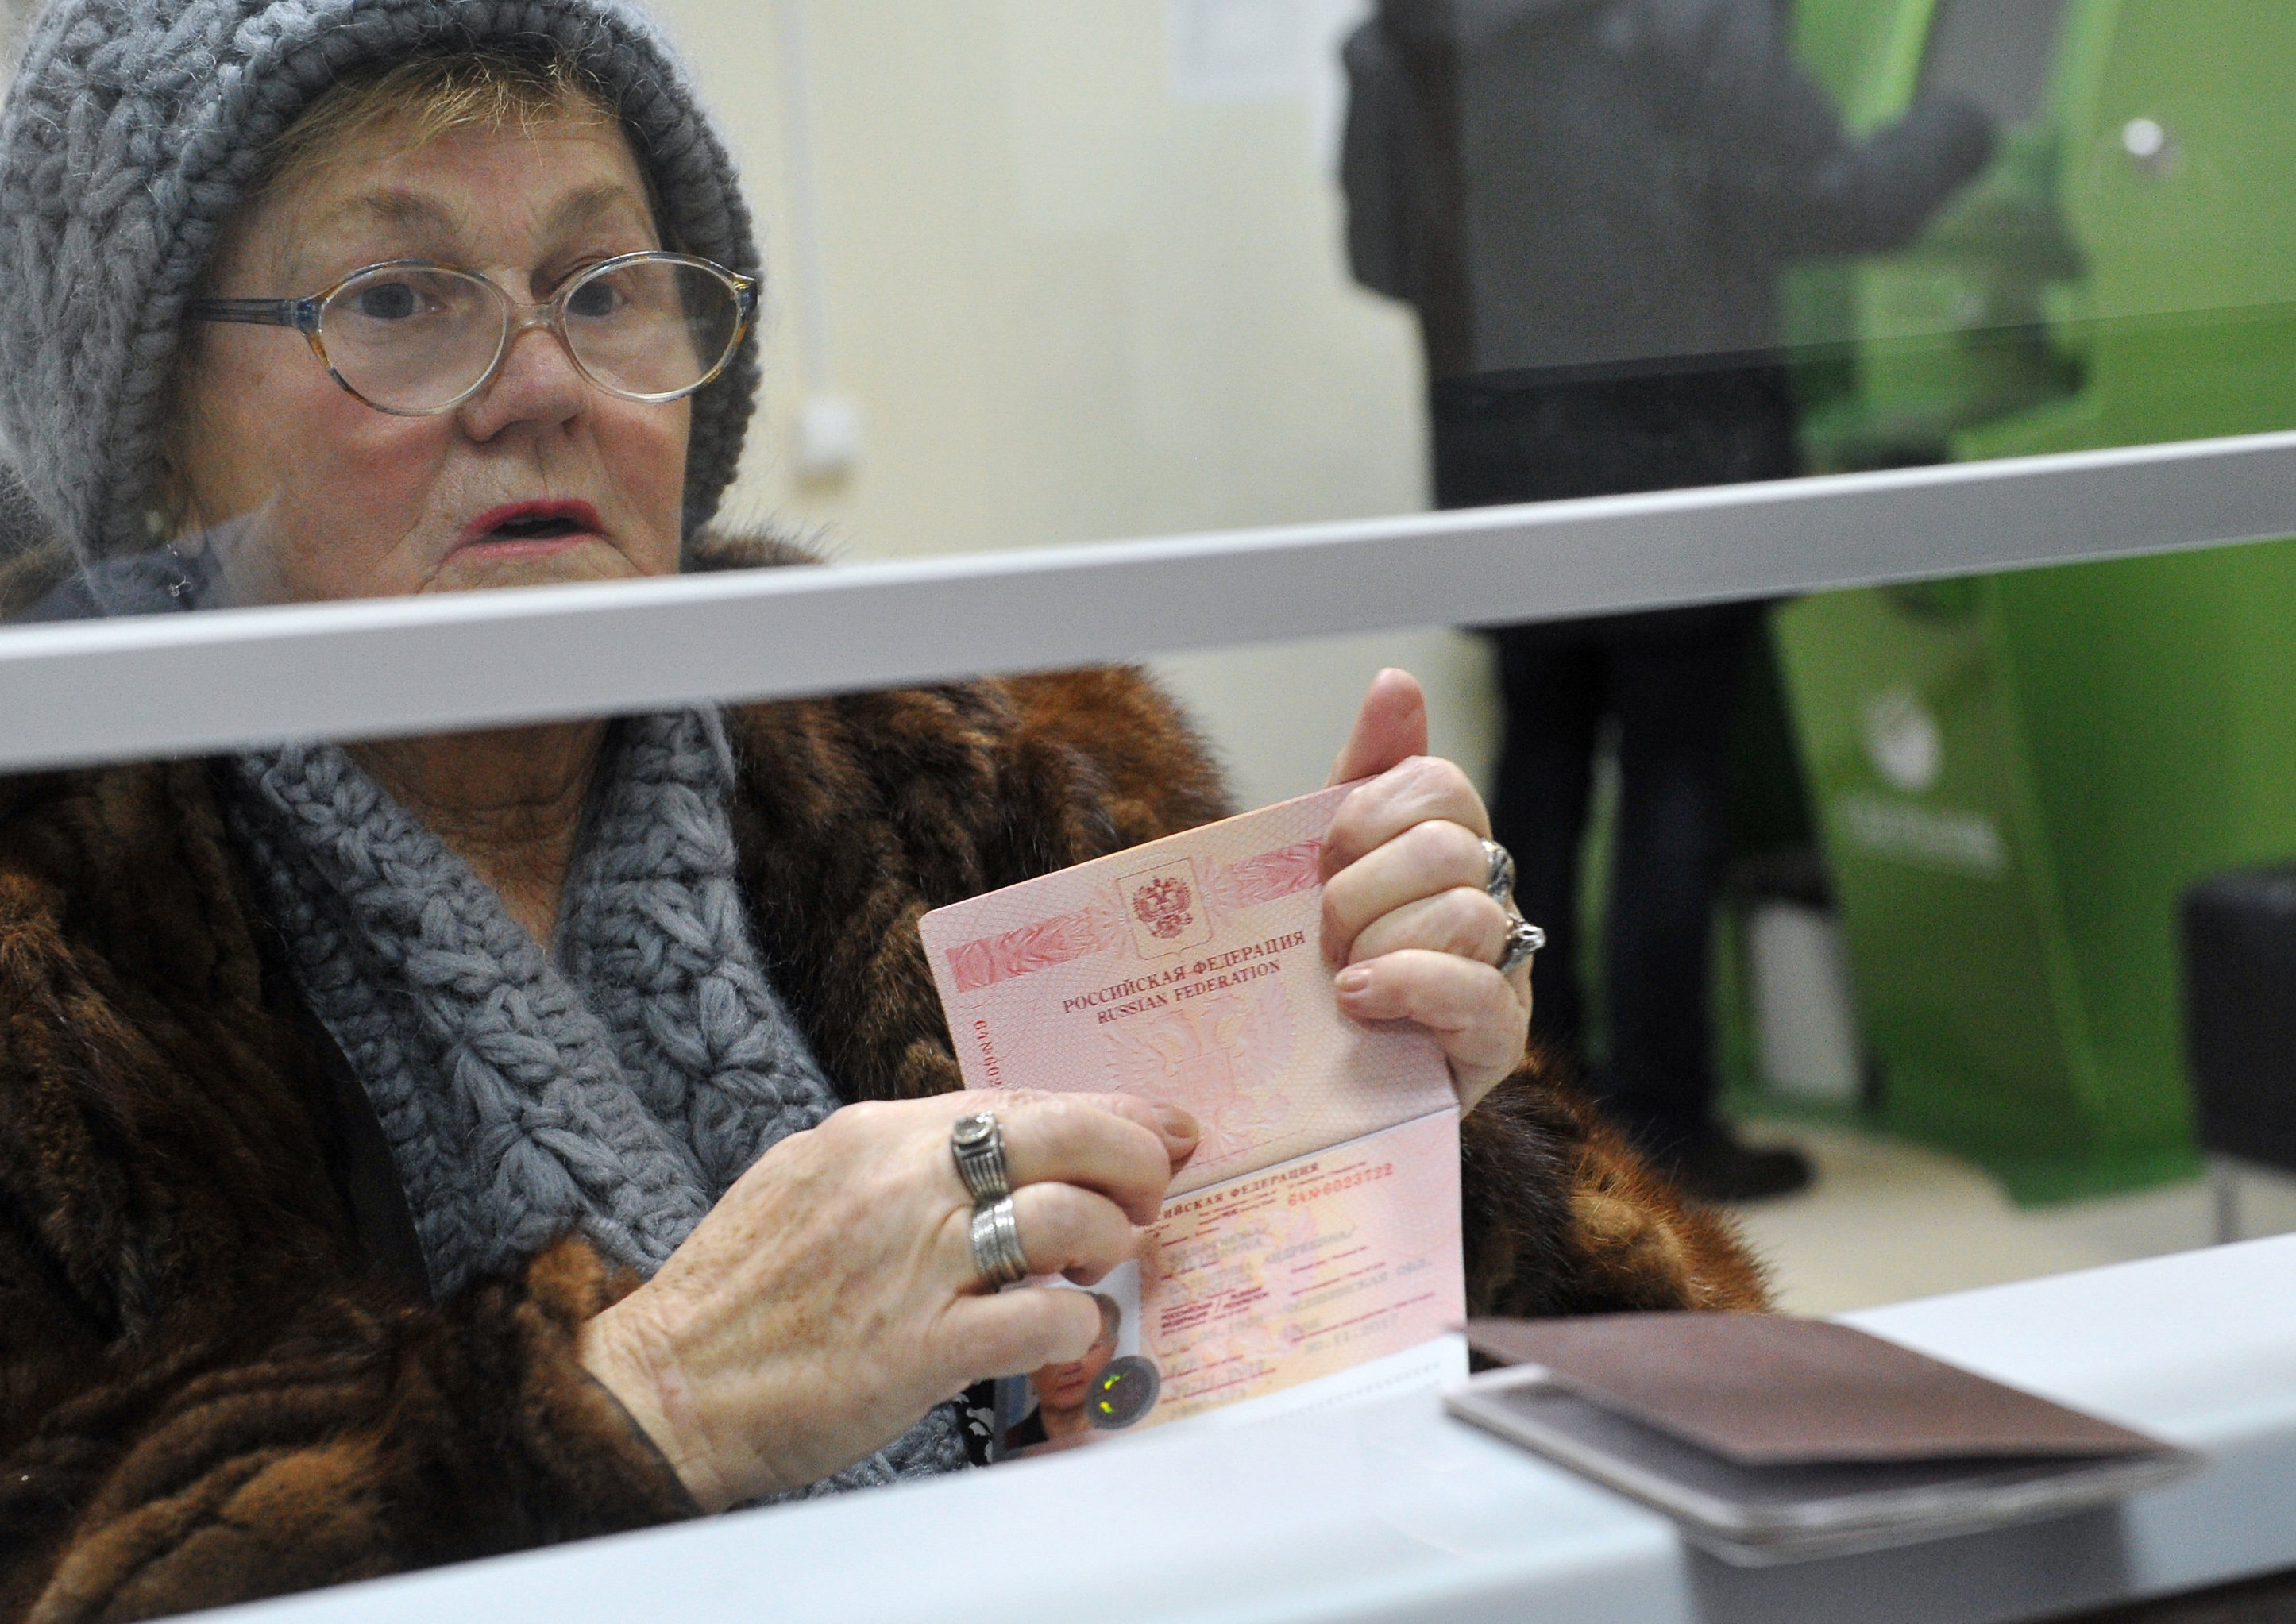 Issuing international passports at the Multifunction State Service Center of Moscow's Nagorny district